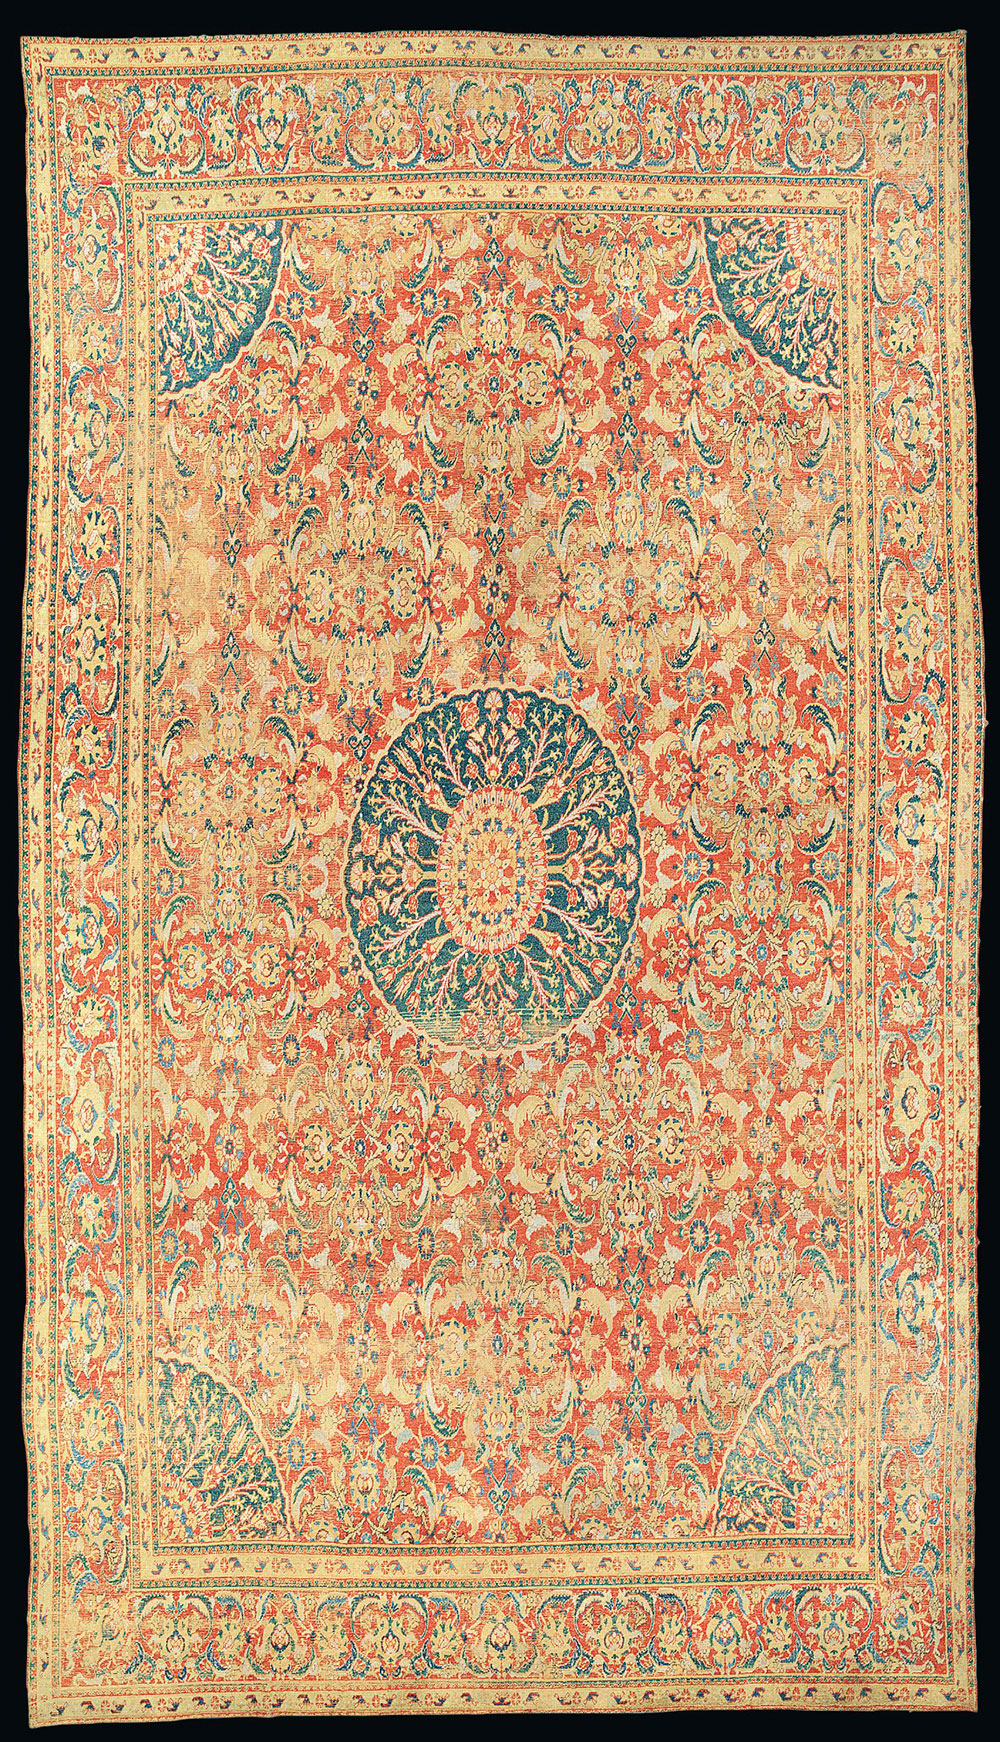 Lot 50, A Cairene Carpet, Egypt, second half 16th century, estimate £60,000-80,000, Christie's